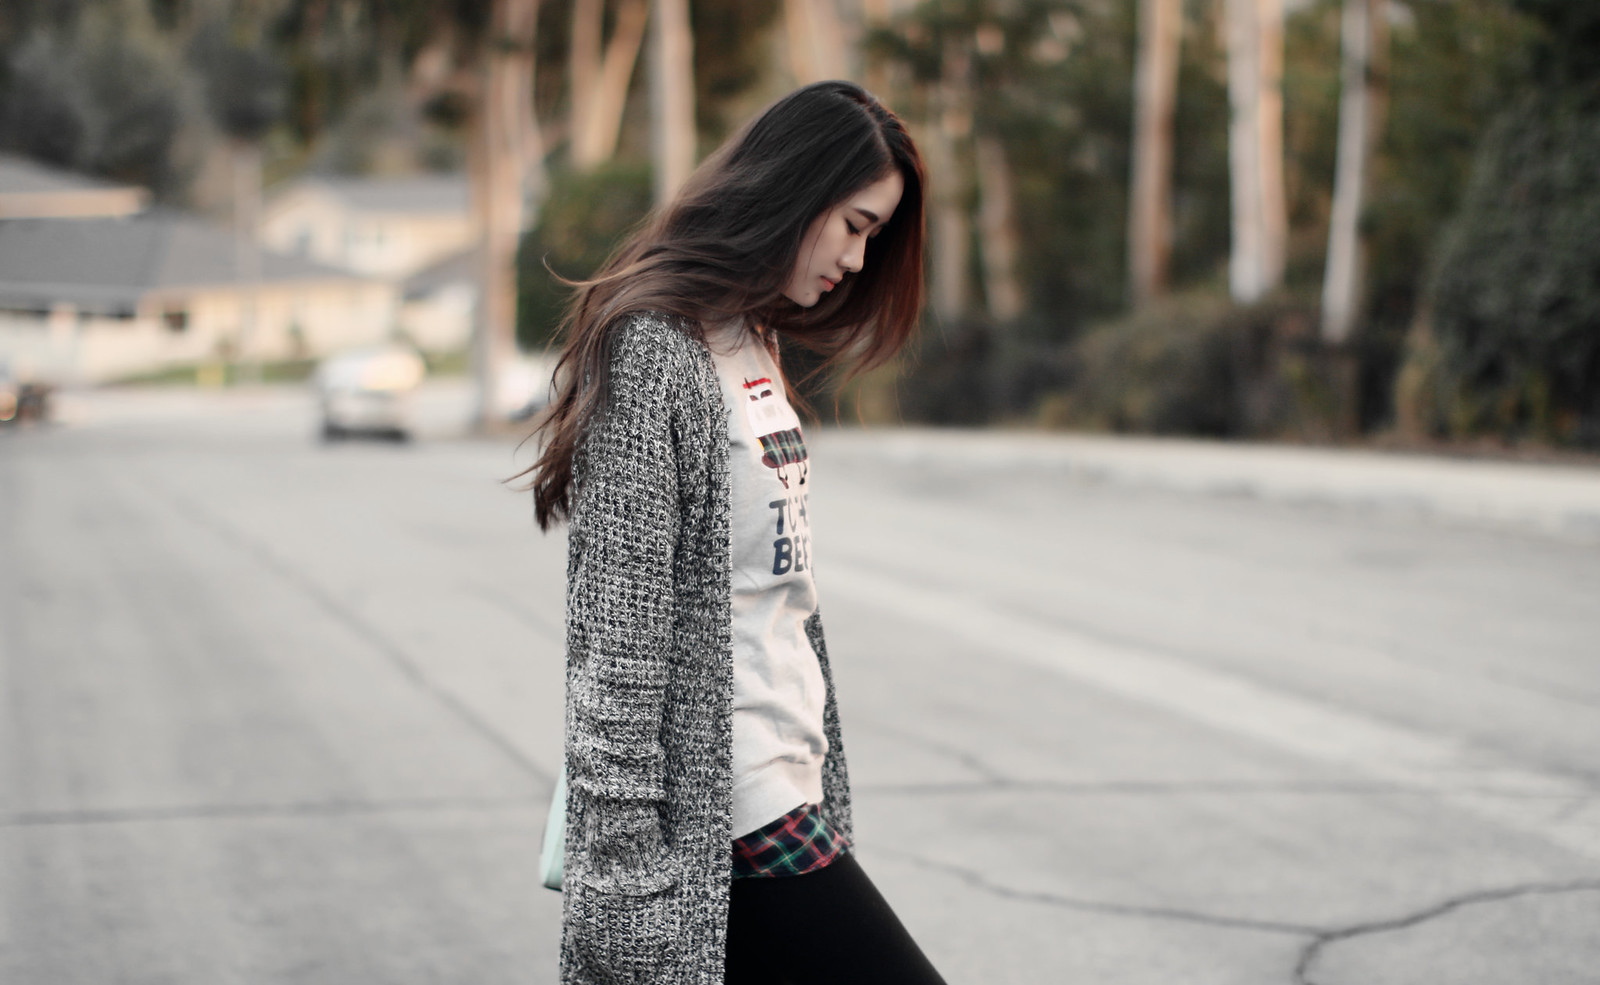 1300-ootd-sweaterdress-koreanfashion-asianfashion-korean-fall-yesstyle-sweaterweather-clothestoyouuu-blogger-elizabeeetht